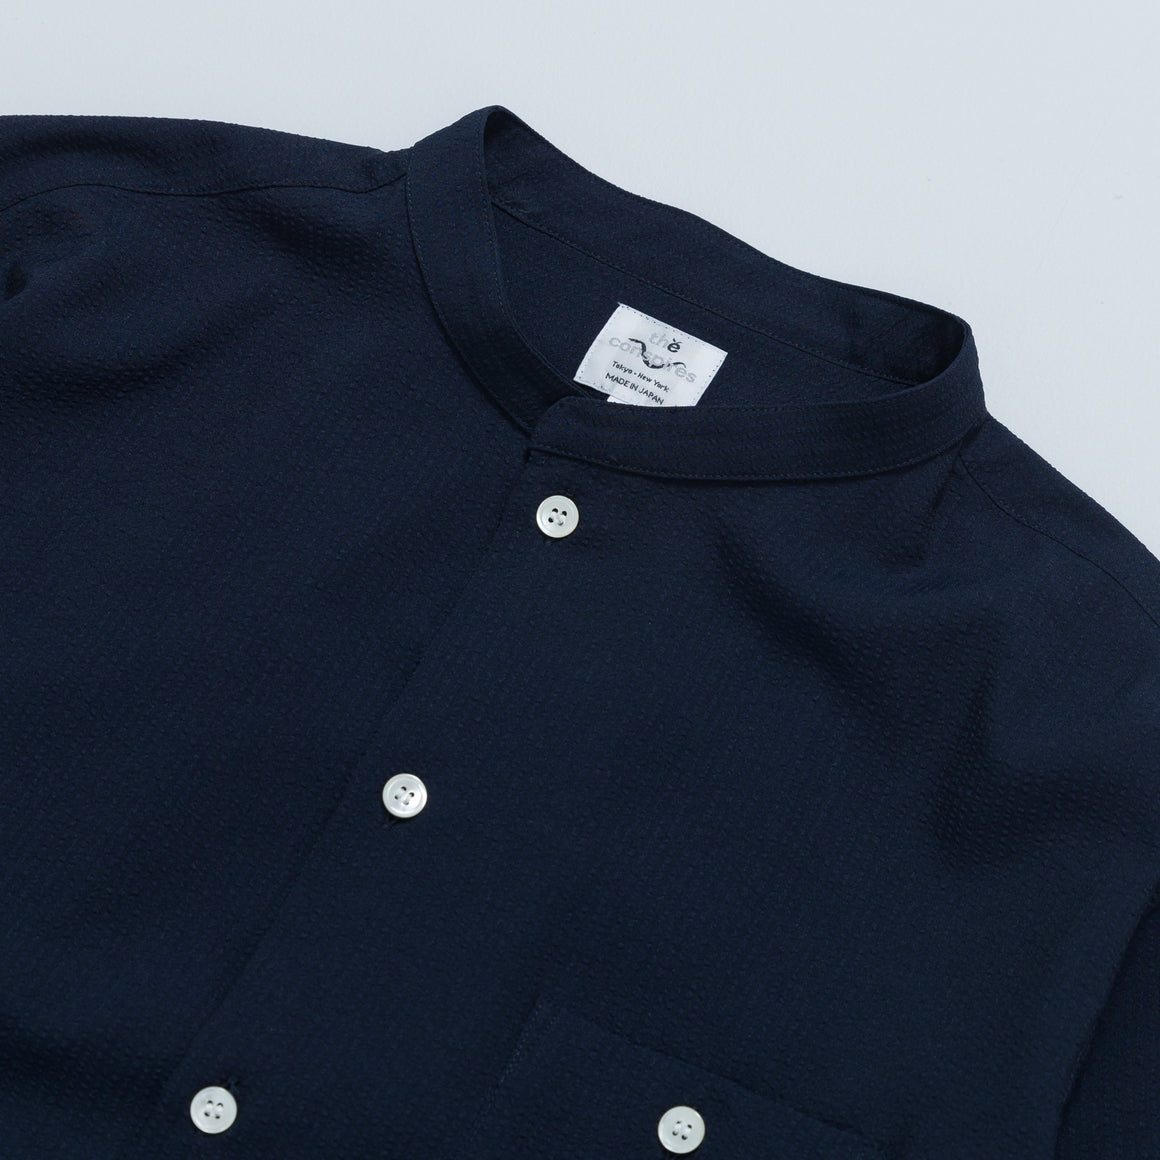 Stand Collar Shirt - Navy - Up There